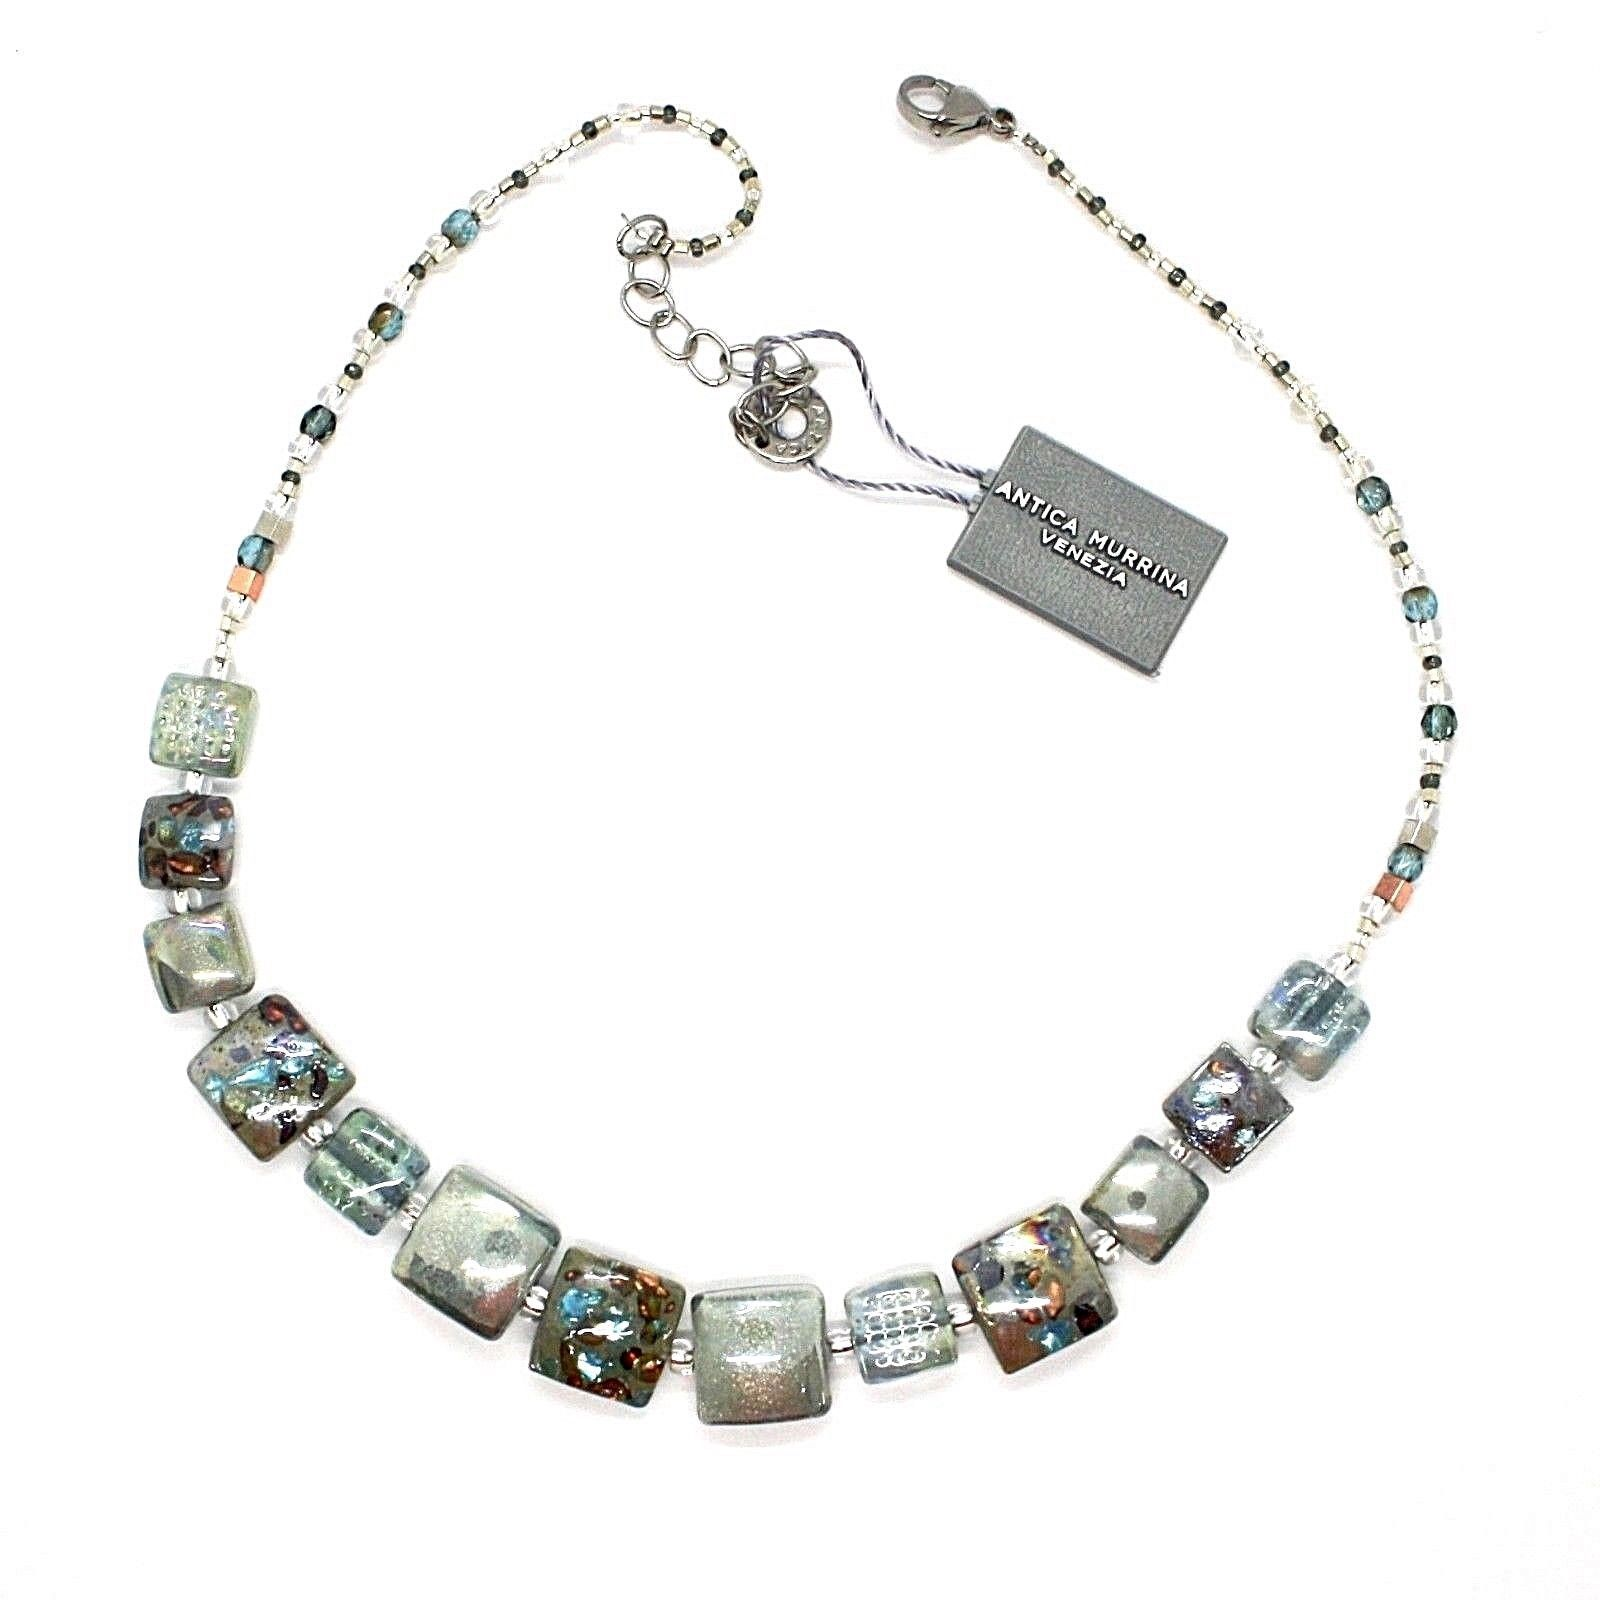 NECKLACE ANTICA MURRINA VENEZIA WITH MURANO GLASS SILVER GRAY CO866A12